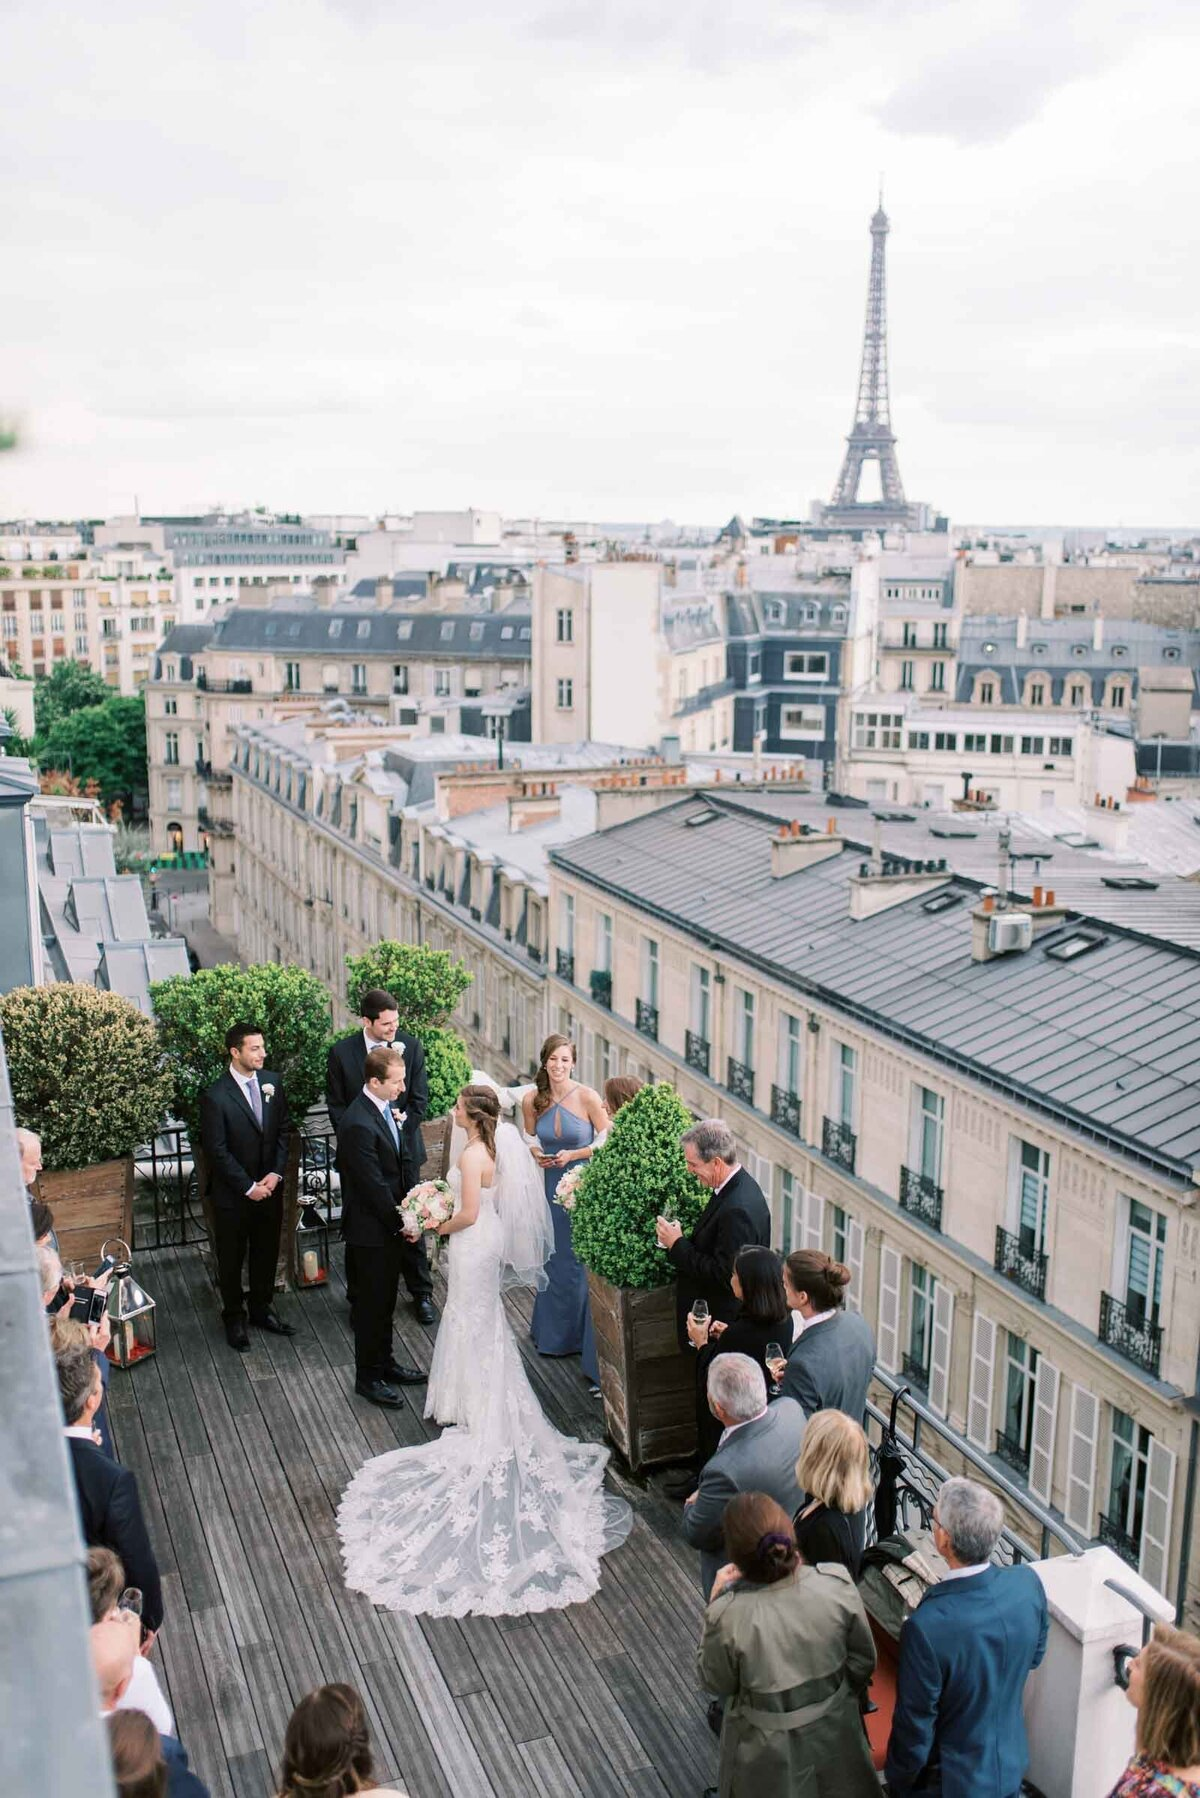 marcelaploskerphotography-paris_wedding-68